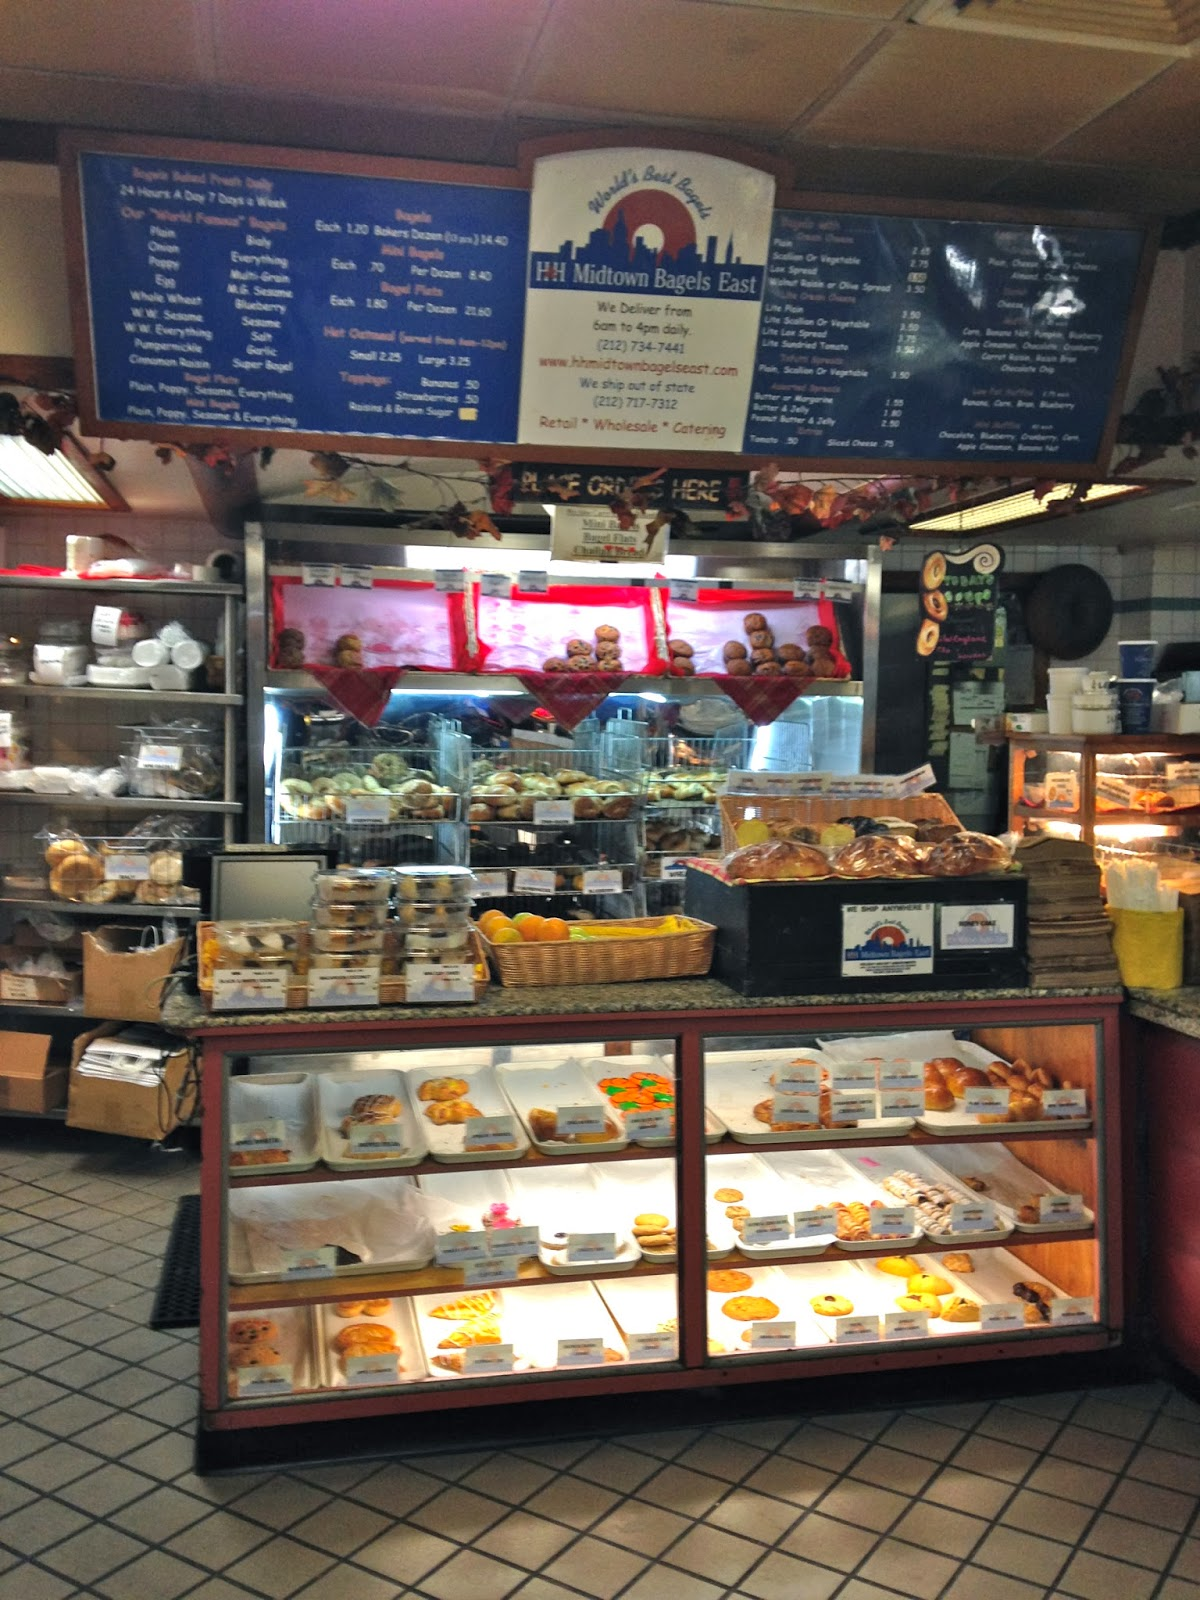 NYC H&H Midtown Bagels East - Inside Store, Cashier